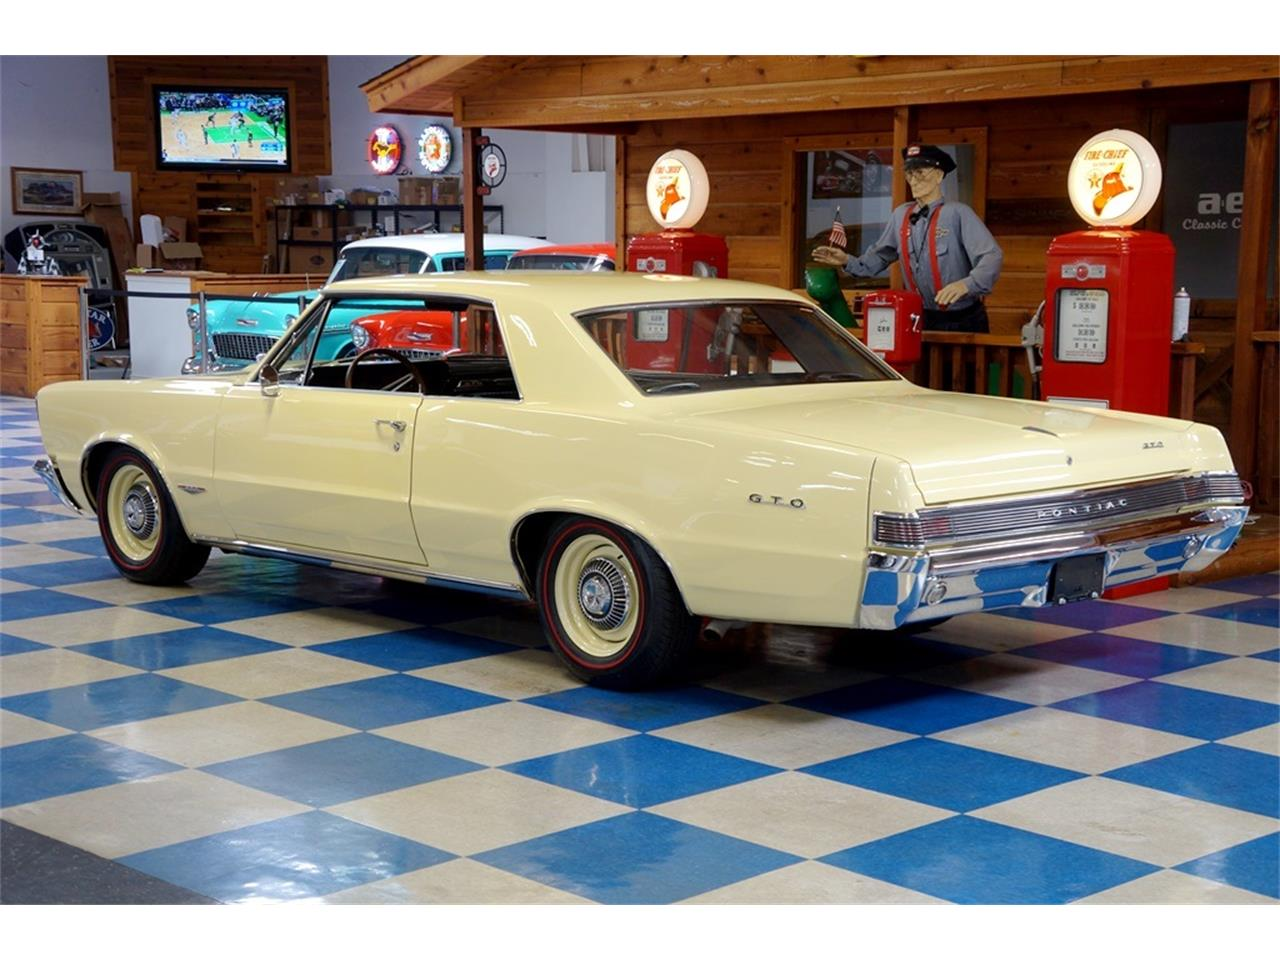 Large Picture of Classic 1965 GTO located in New Braunfels Texas - $44,900.00 Offered by A&E Classic Cars - PWOM